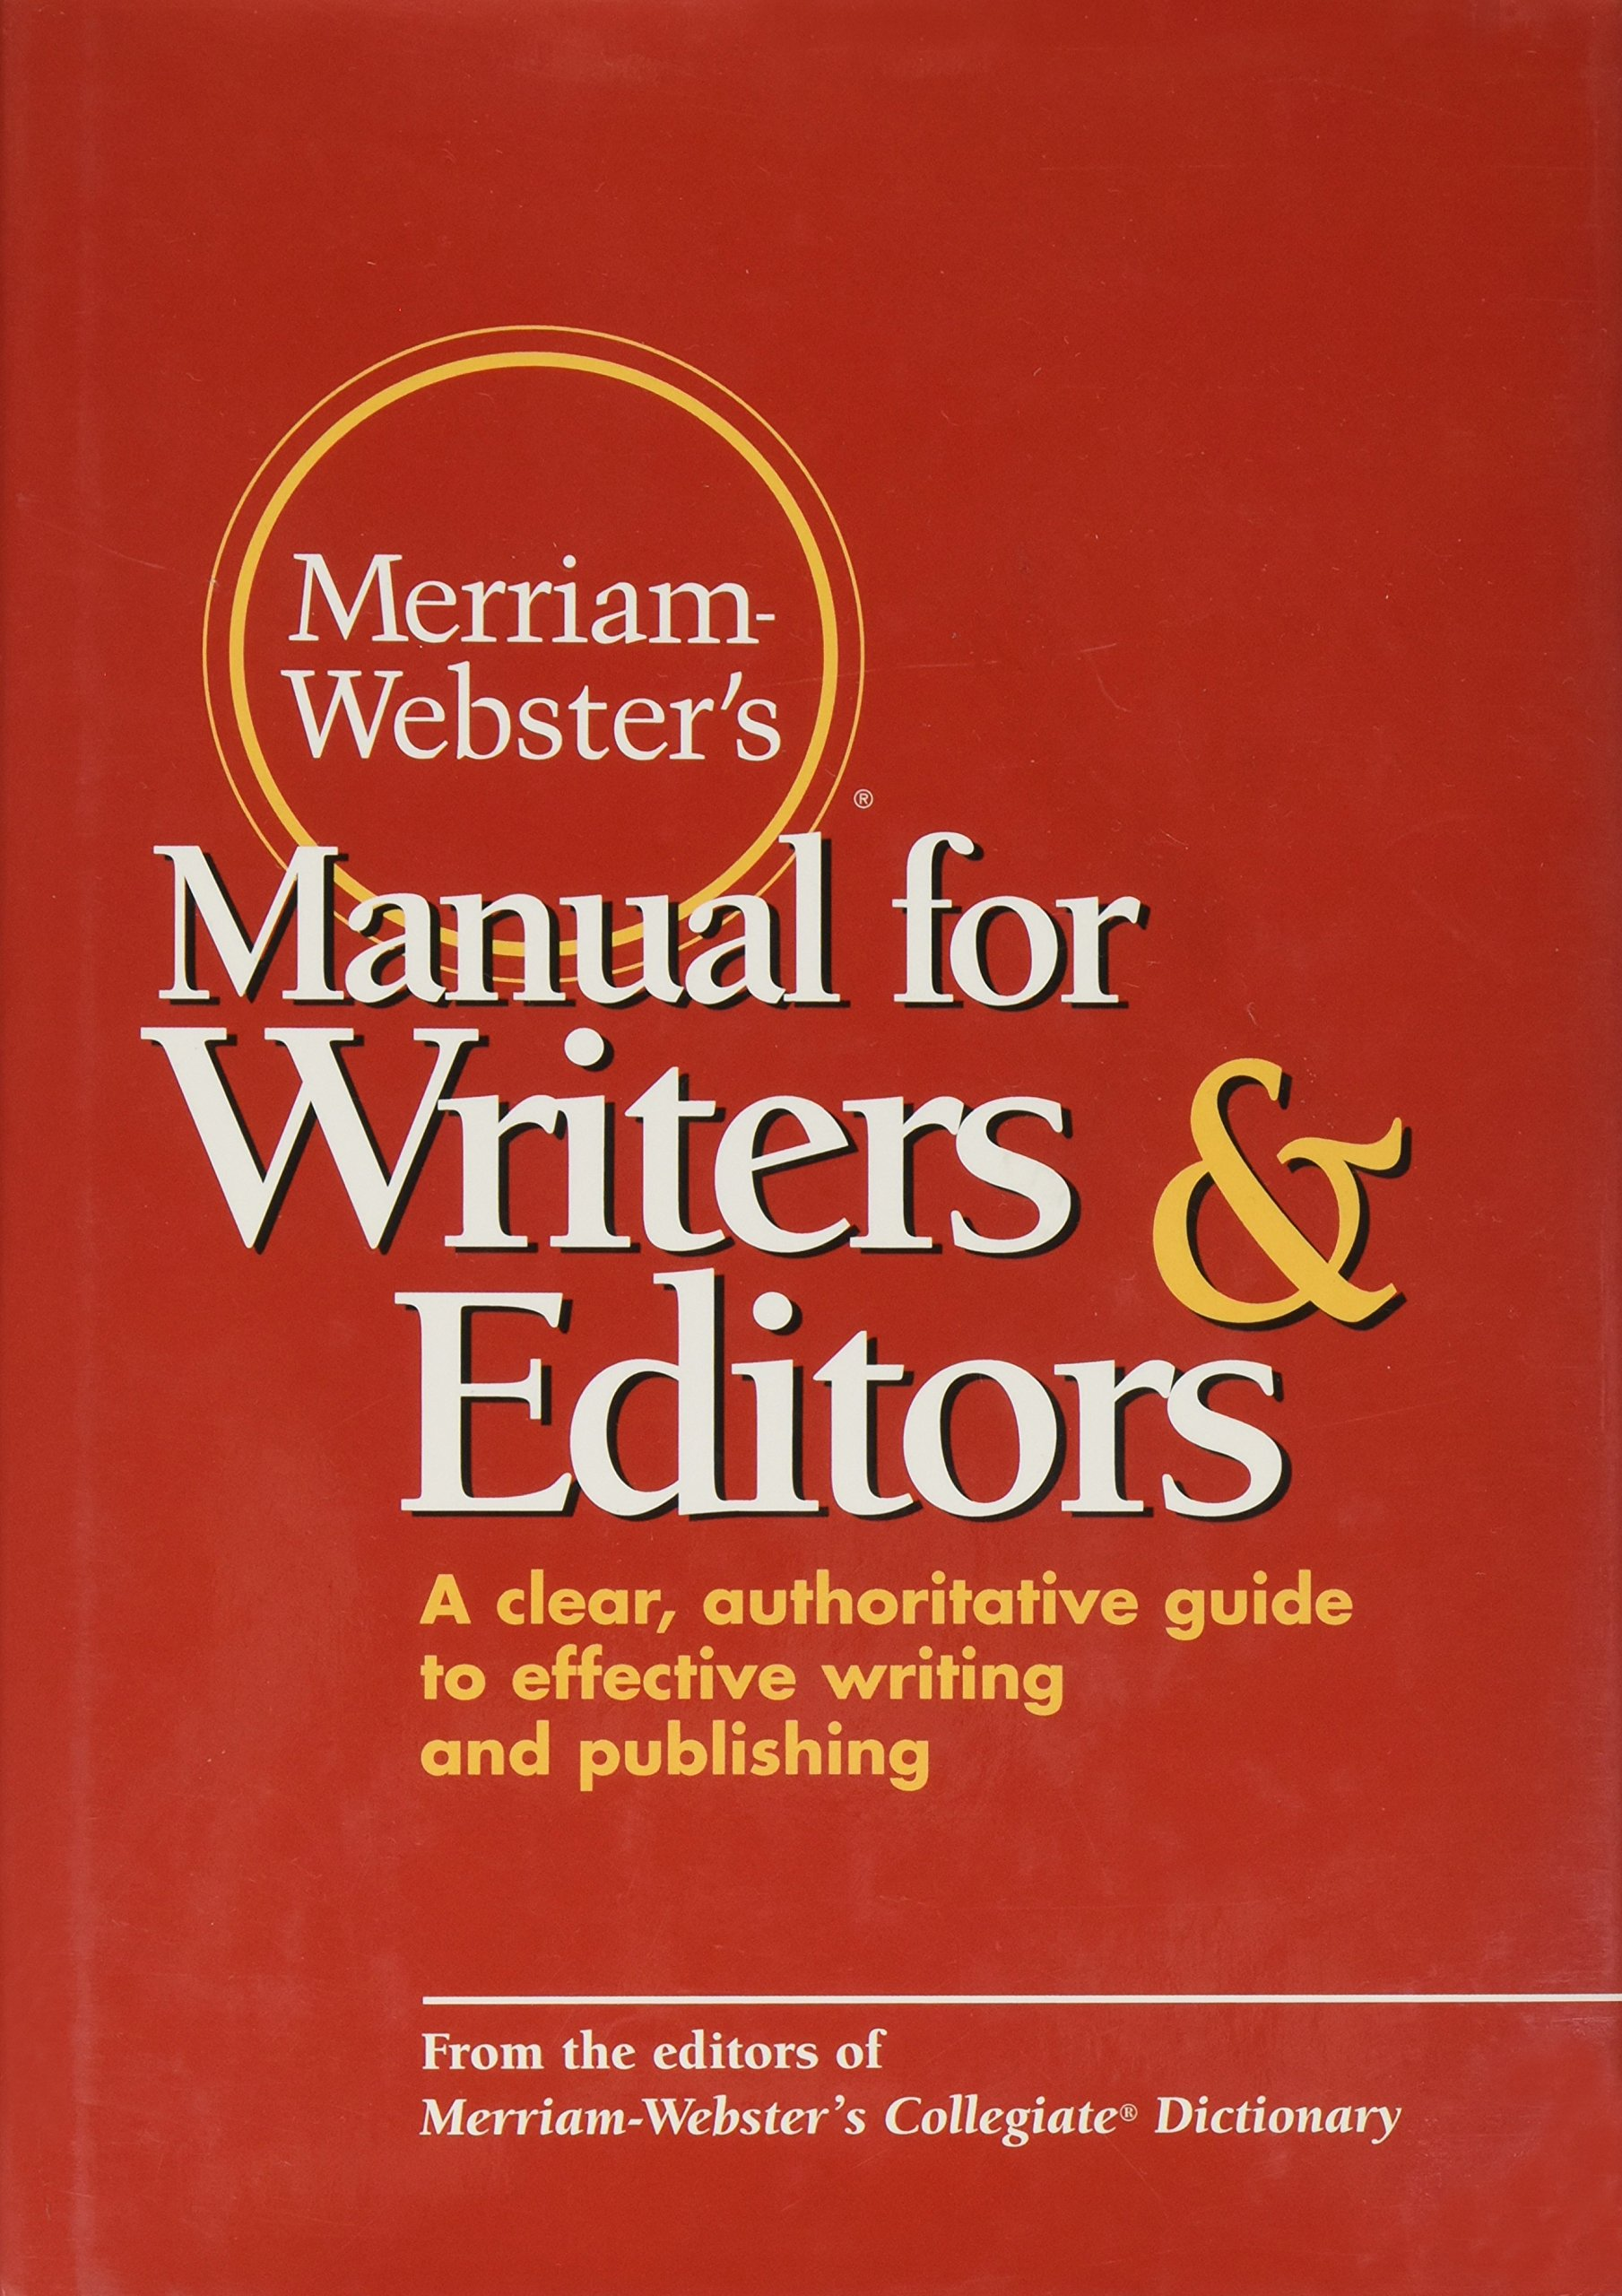 Merriam-Webster's Manual for Writers & Editors: A clear